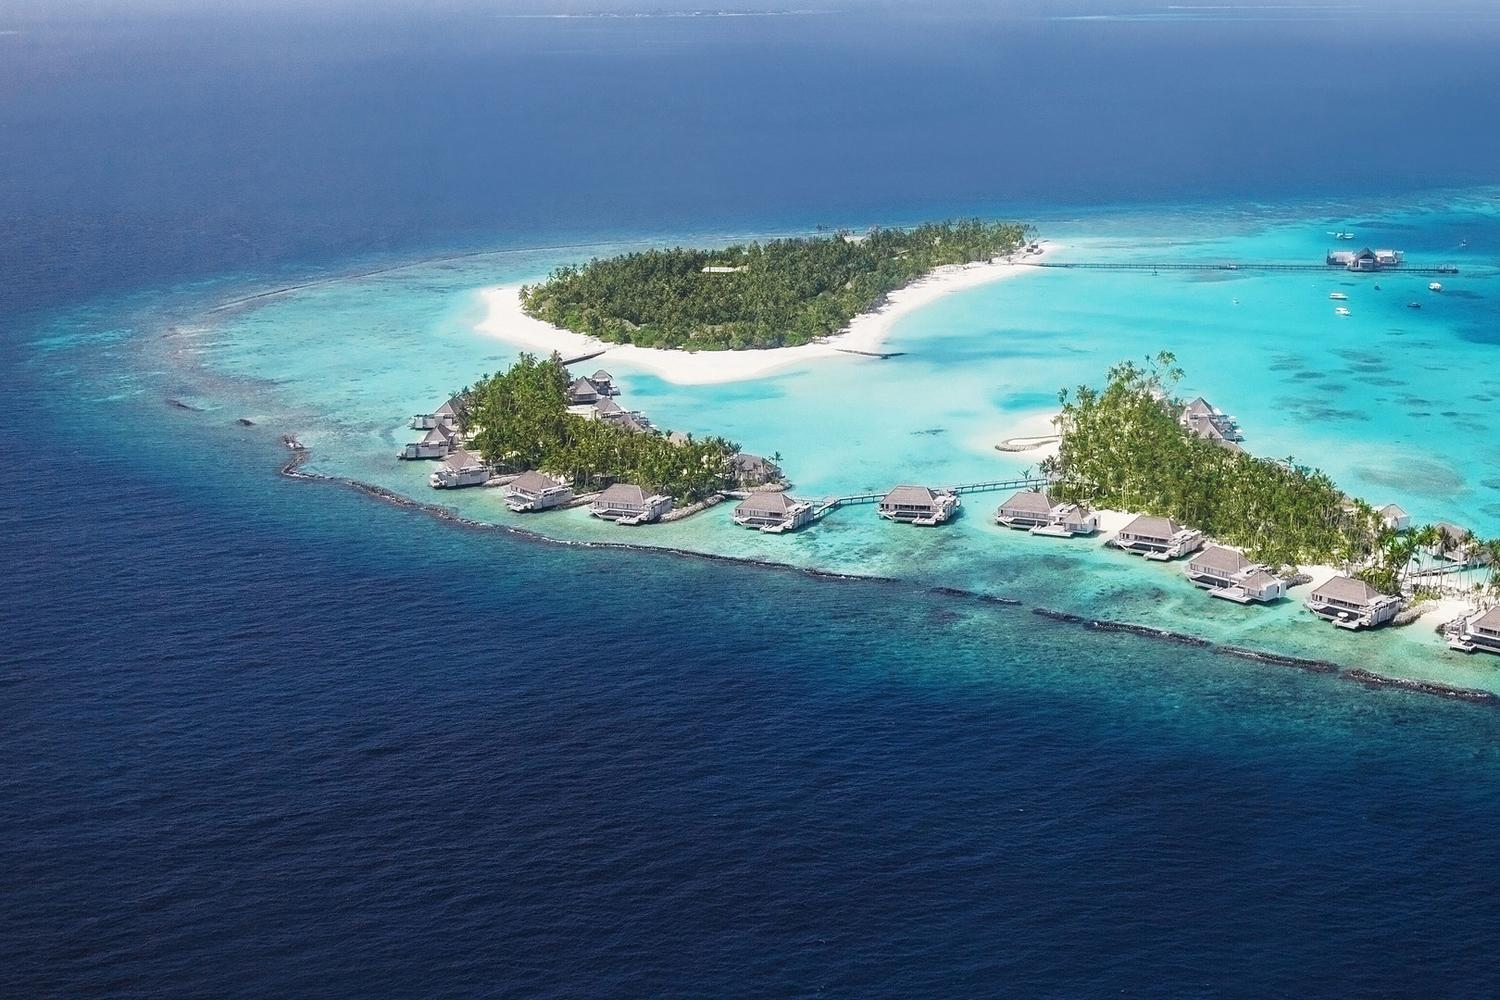 The Maldives re-open for foreign tourists from July 25th 2020